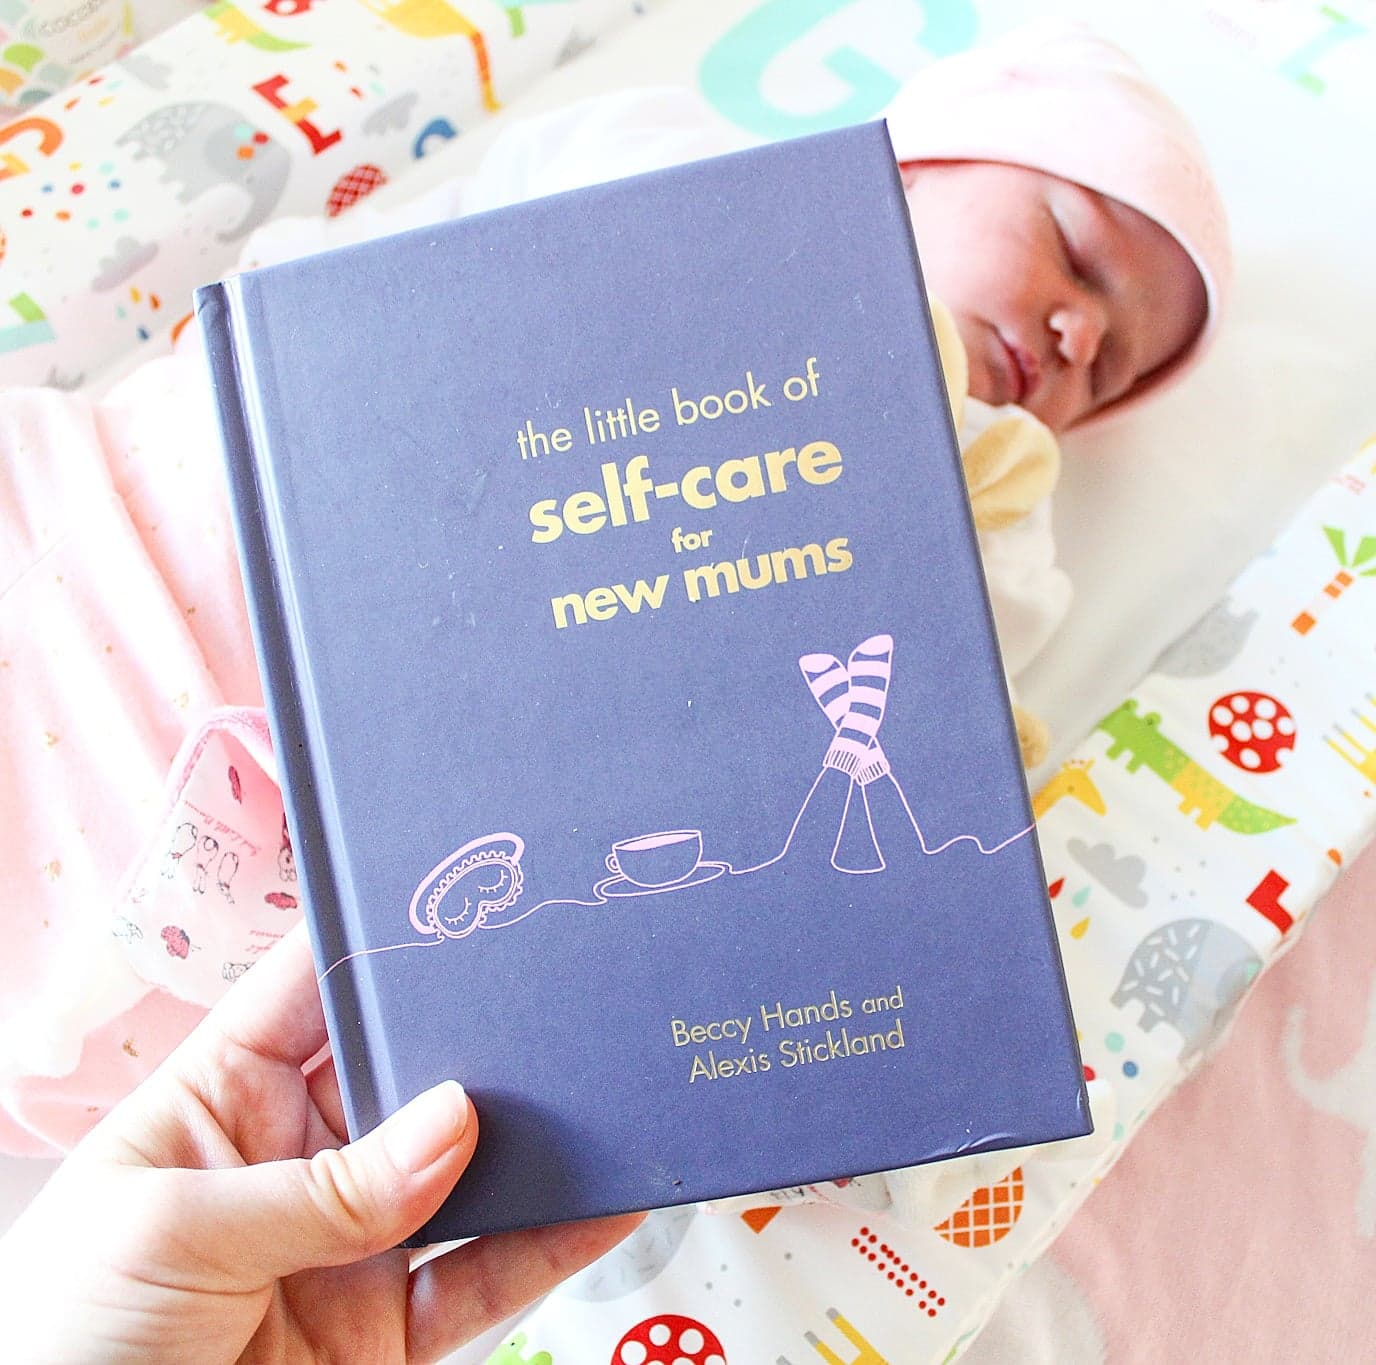 The Little Book of Self-Care for New Mums by Alexis Stickland and Beccy Hands